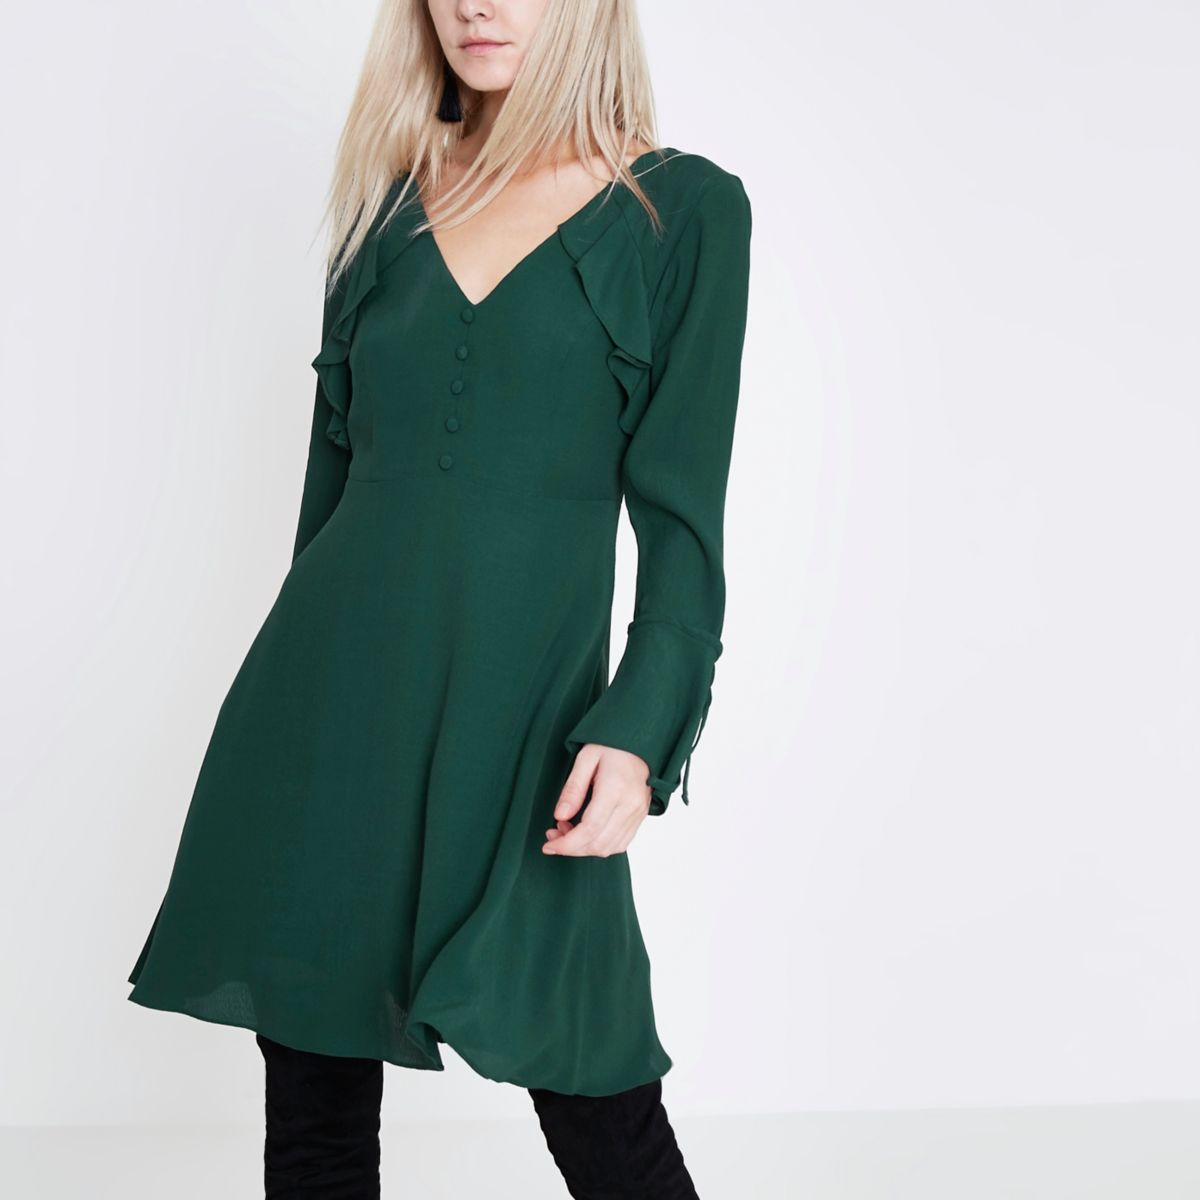 Petite dark green long sleeve tea dress